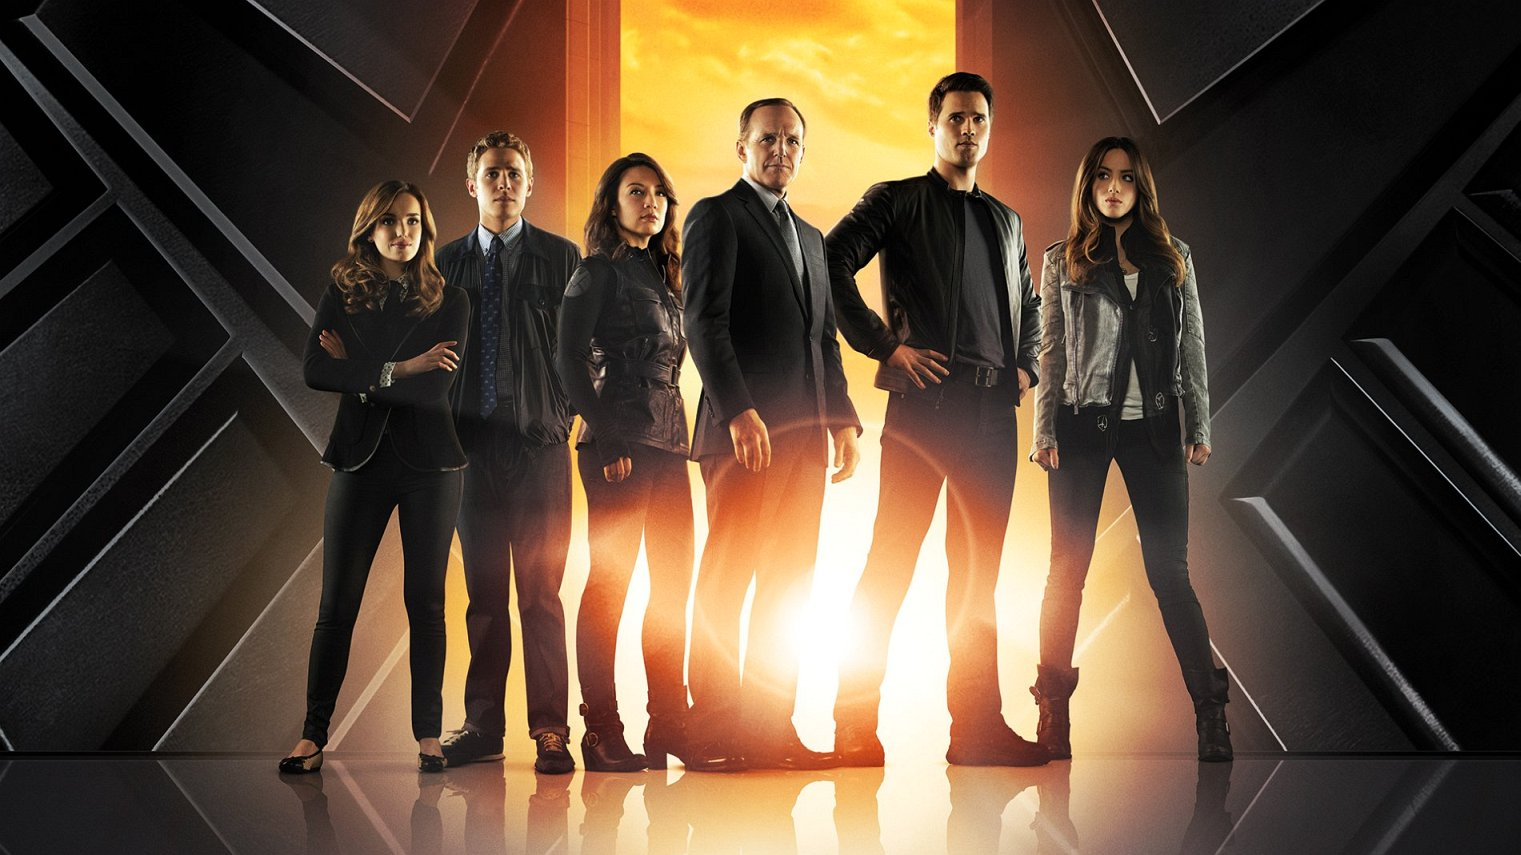 Marvel's Agents of S.H.I.E.L.D. season 5 episode 7 watch online